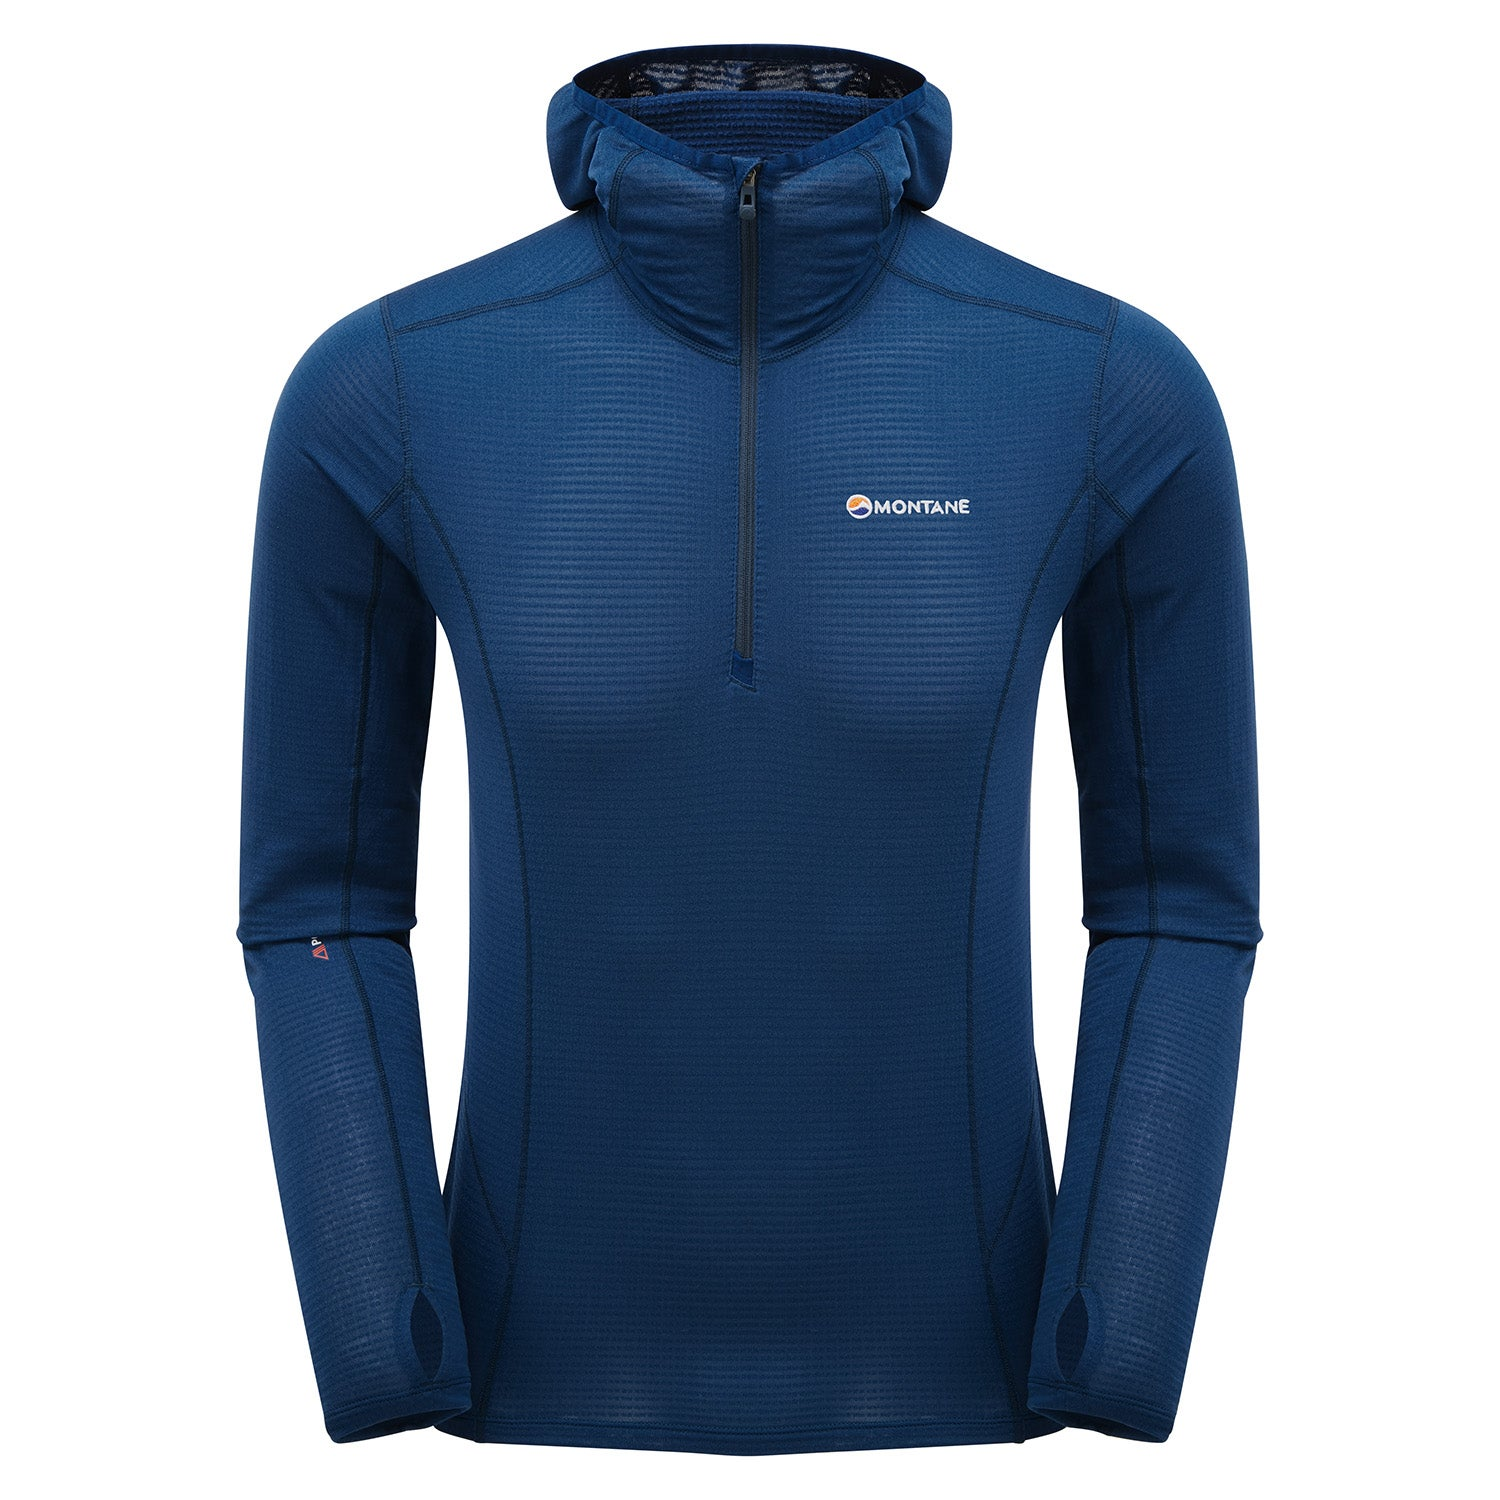 Montane Allez Micro Pull On Mens Base Layer Top Black All Sizes